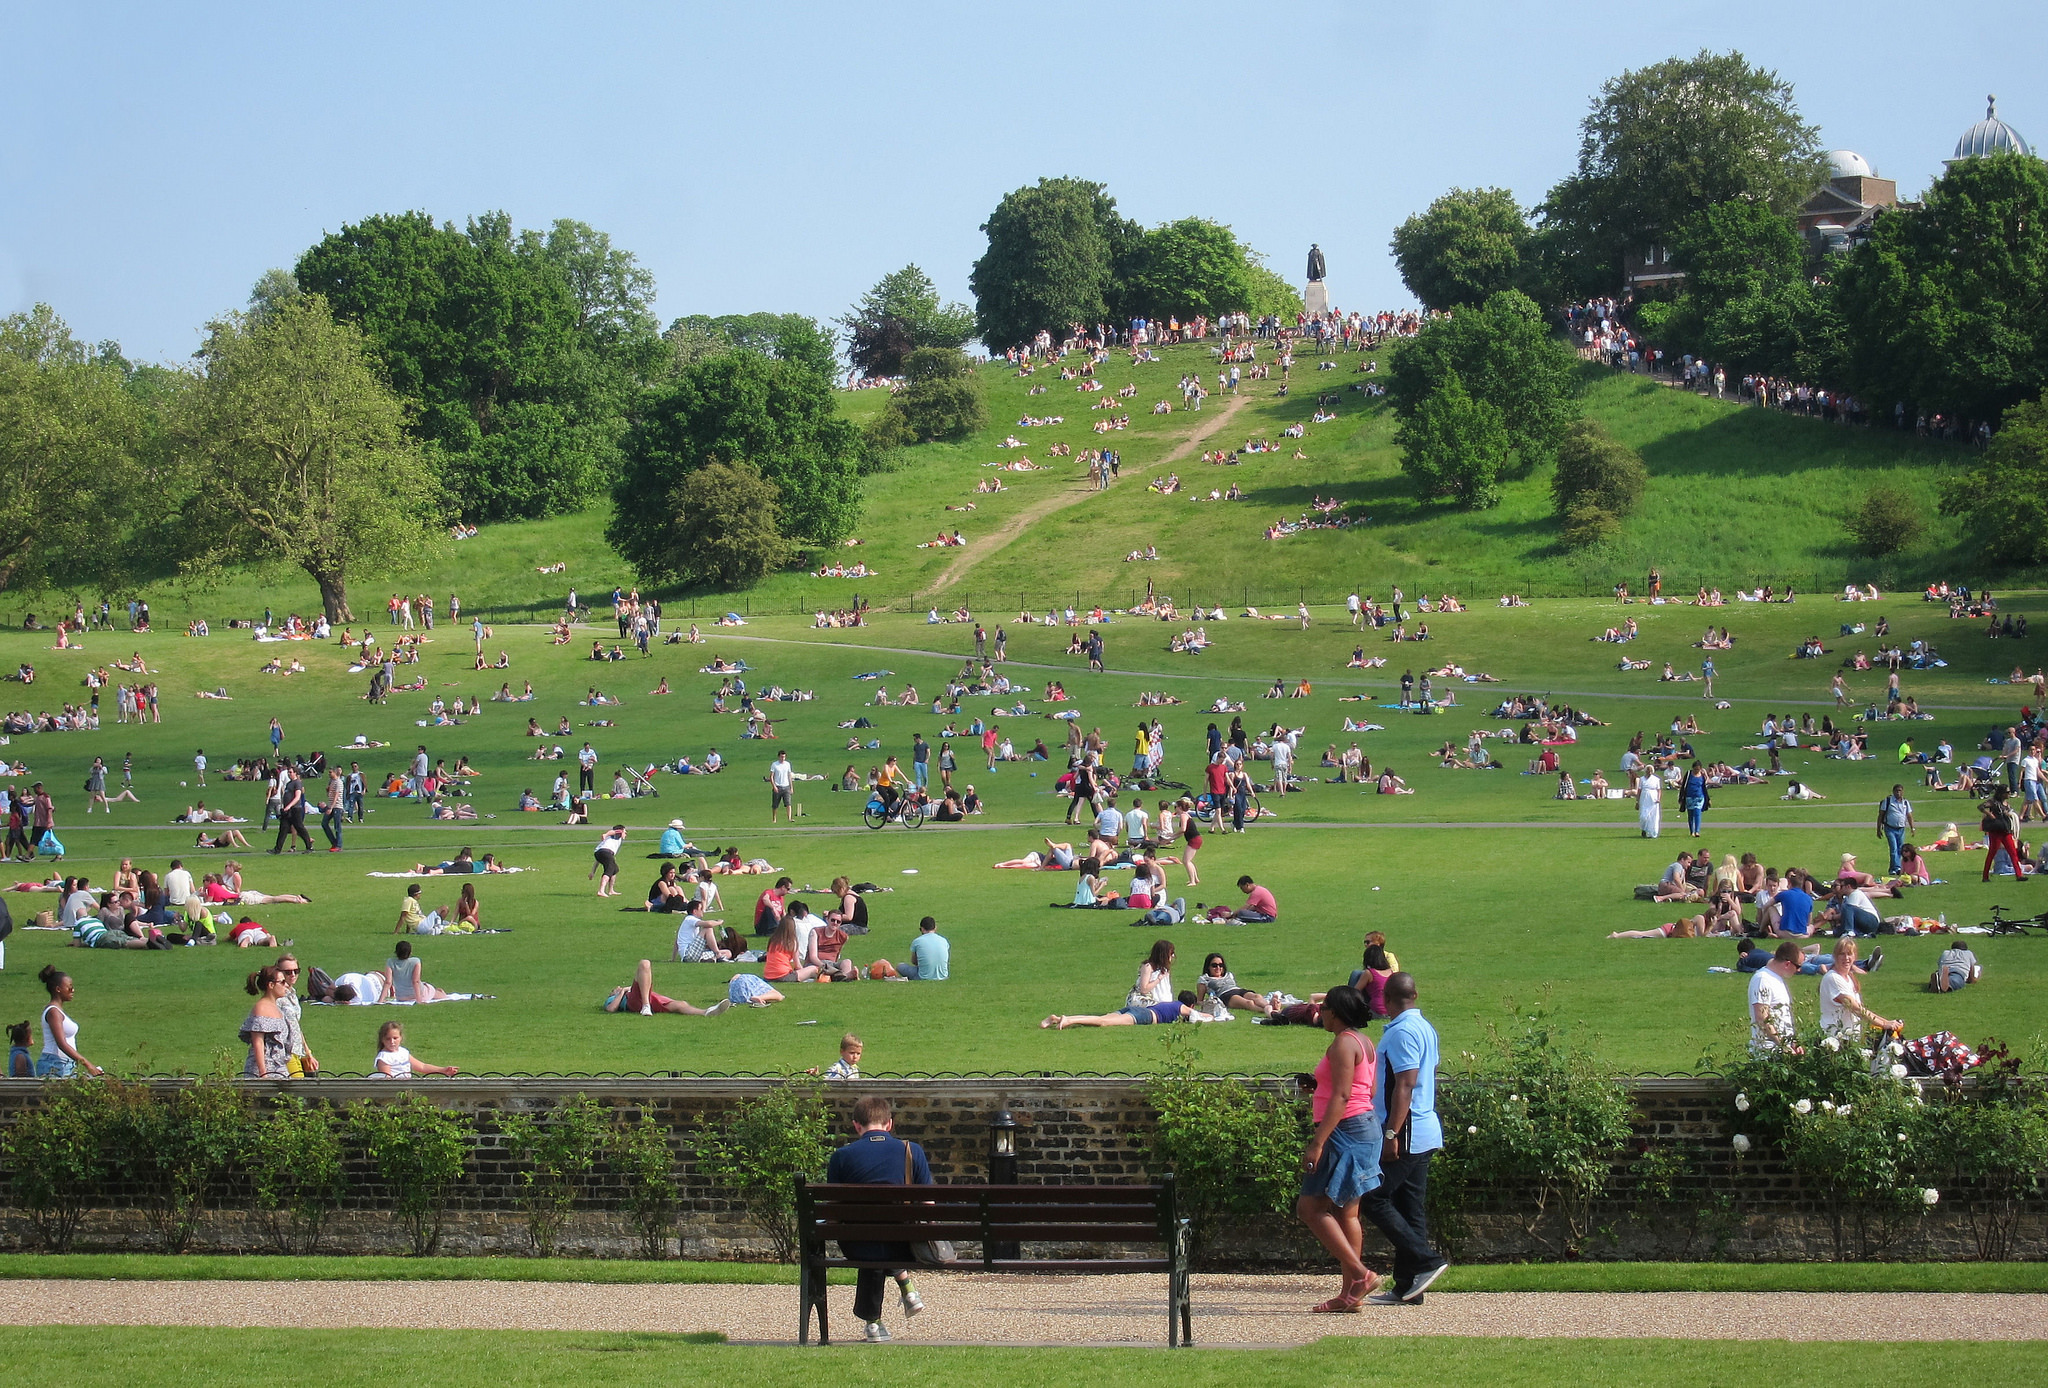 Top things to do outside in London